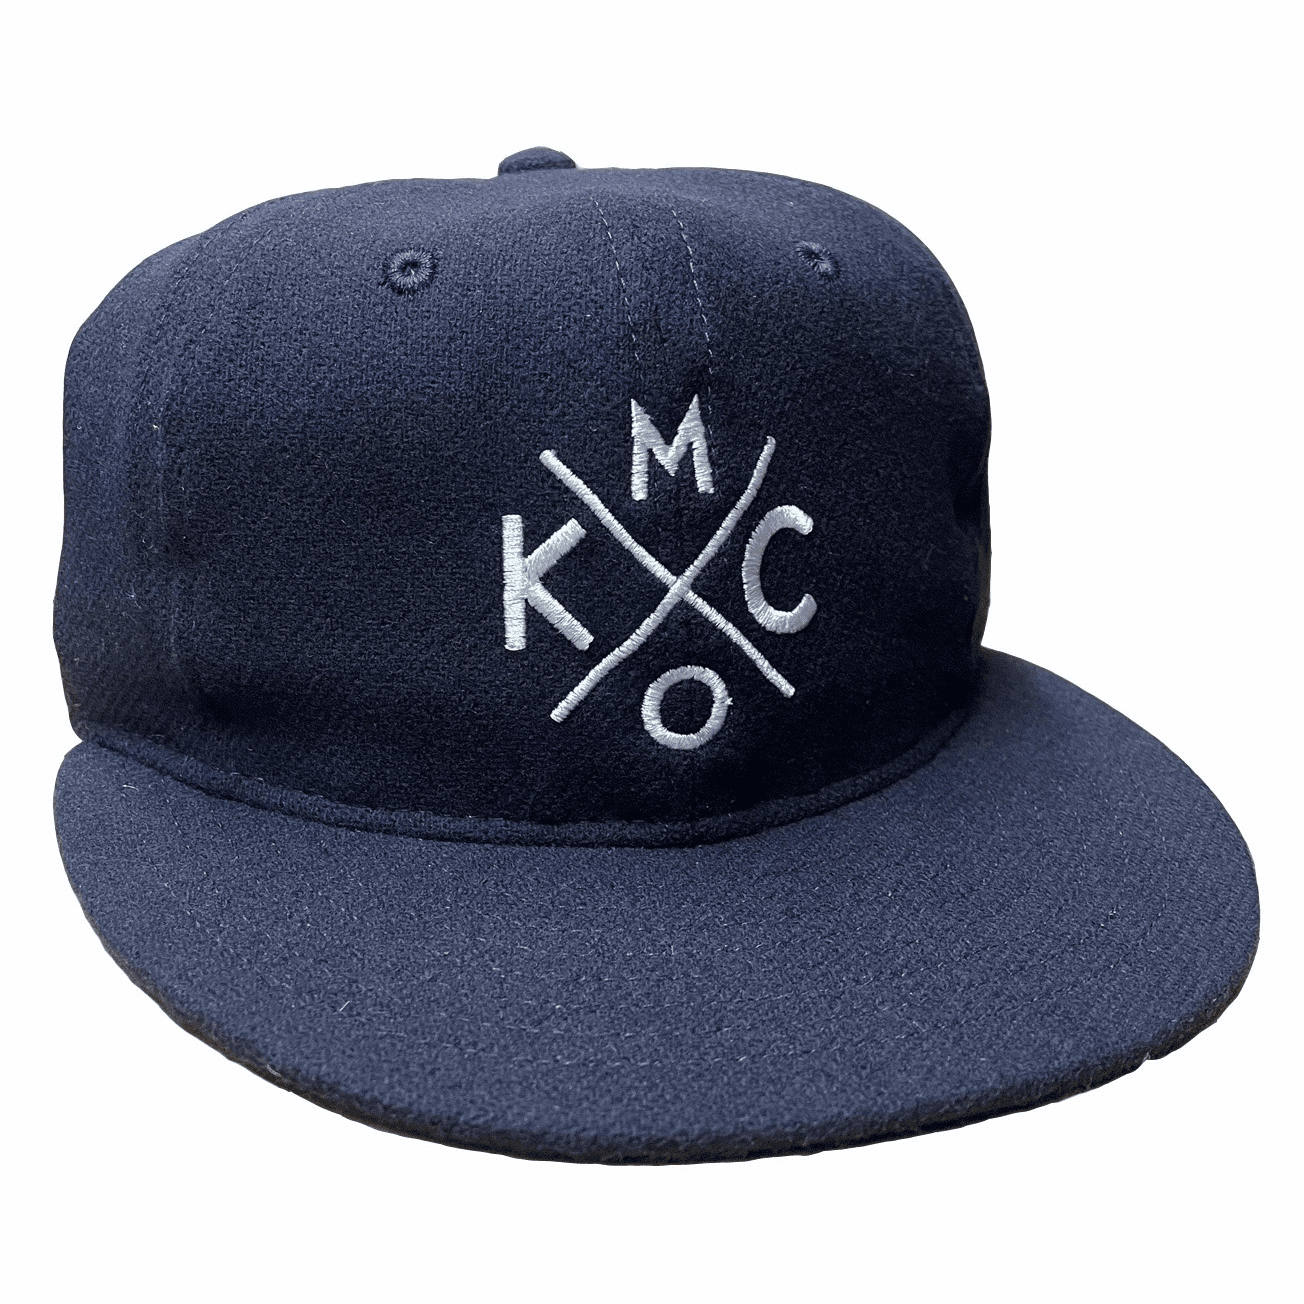 KCMO Wool Flatbill Hat<br>Navy